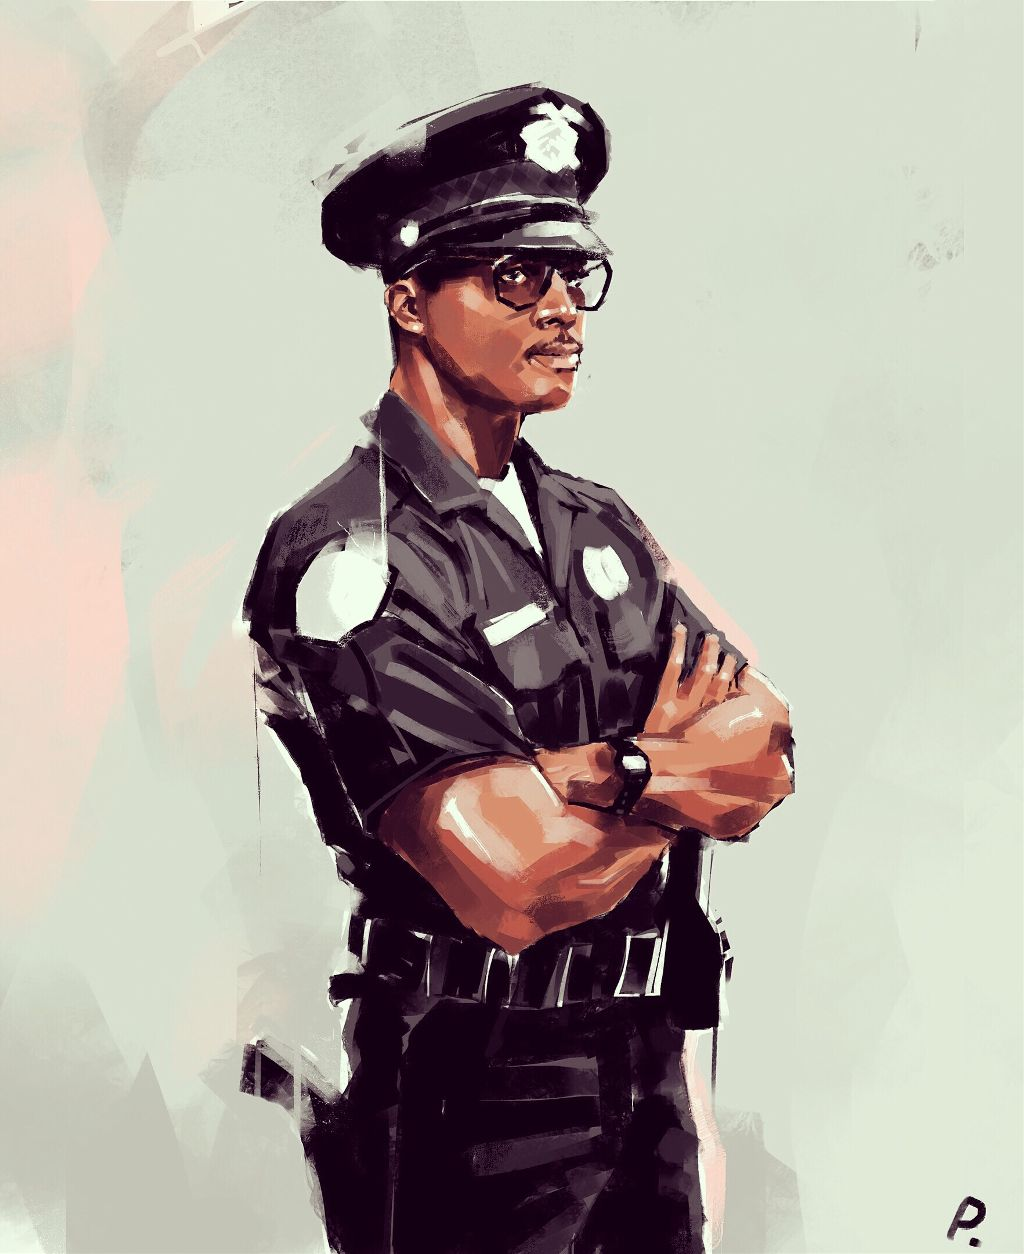 Kevin Hall L.A.P.D. 1980s #punksy #artist #painter #illustrator #drawing #lapd #police #80s